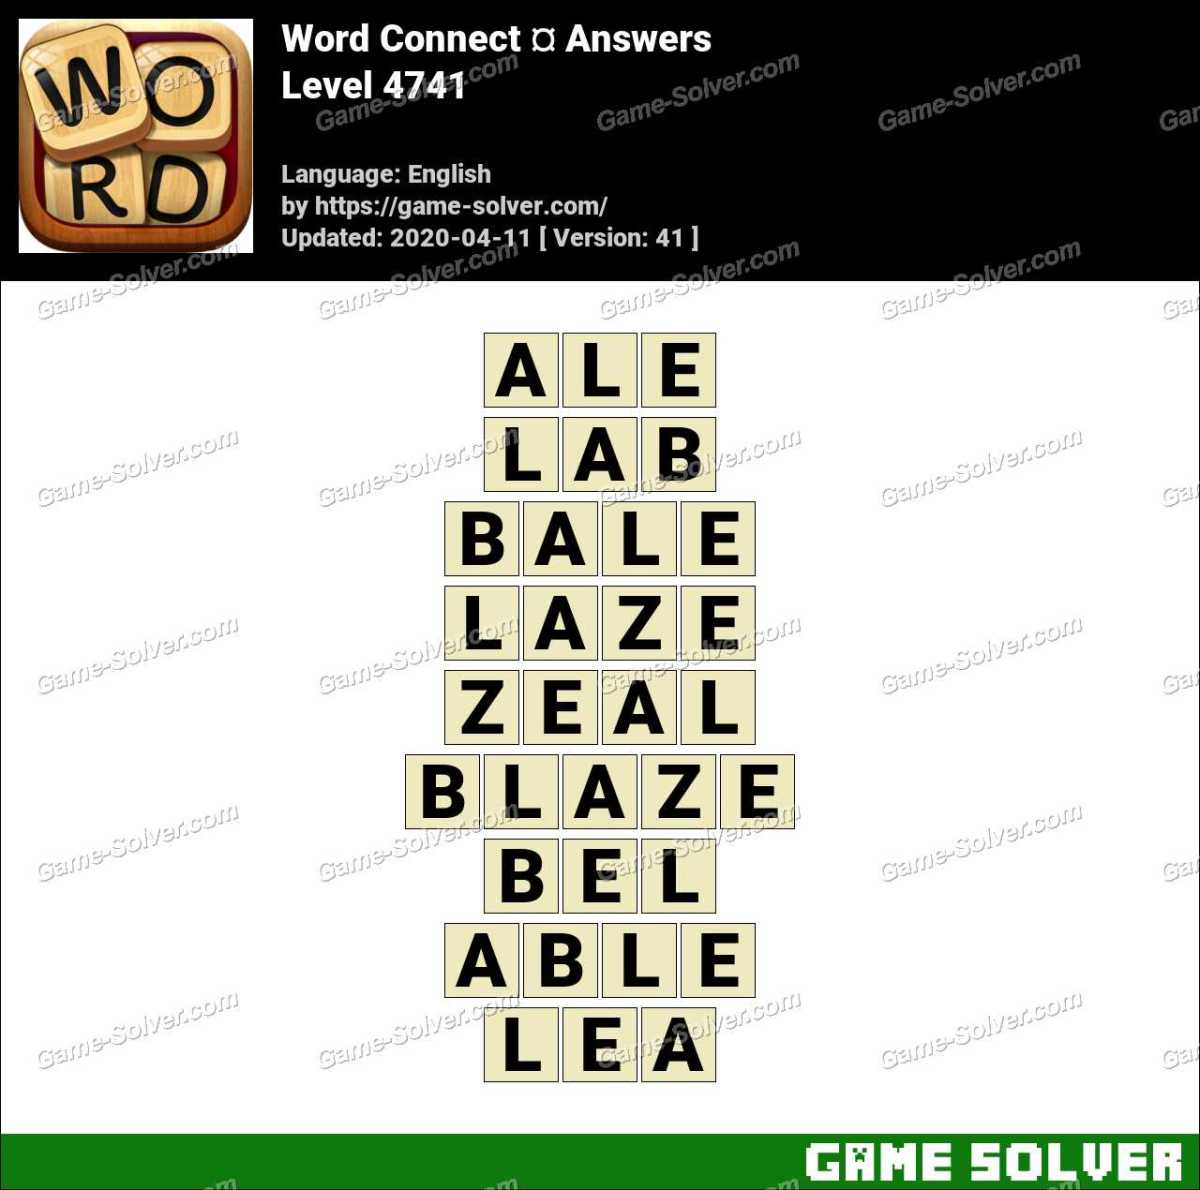 Word Connect Level 4741 Answers